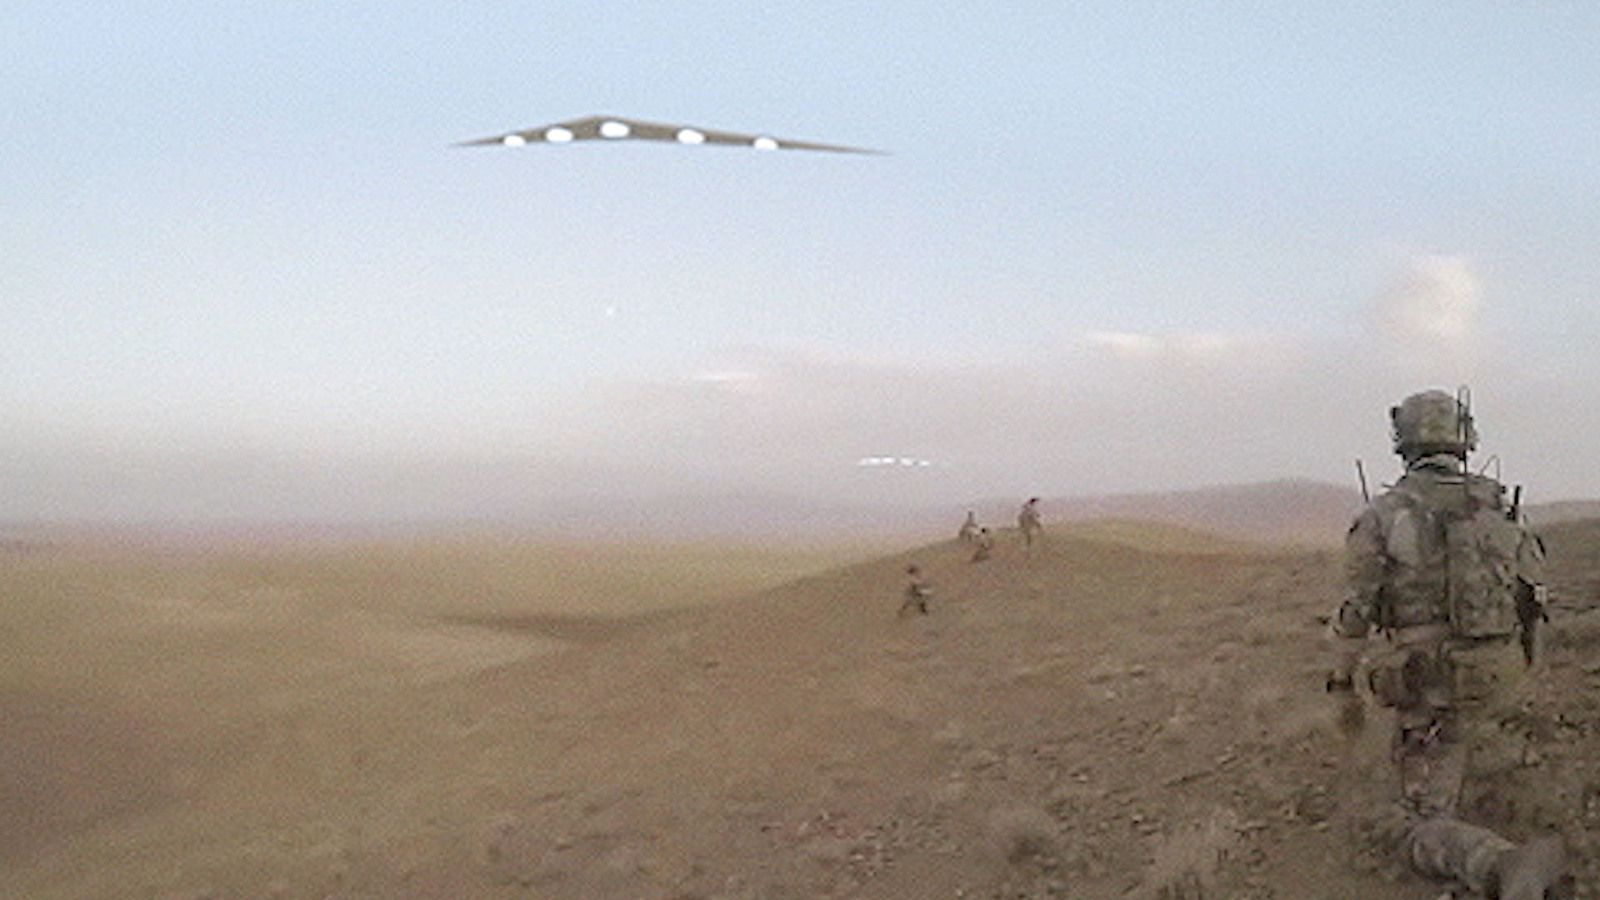 👽 Multiple TRIANGLE UFOs Filmed in Afghan Desert by US Special Forces